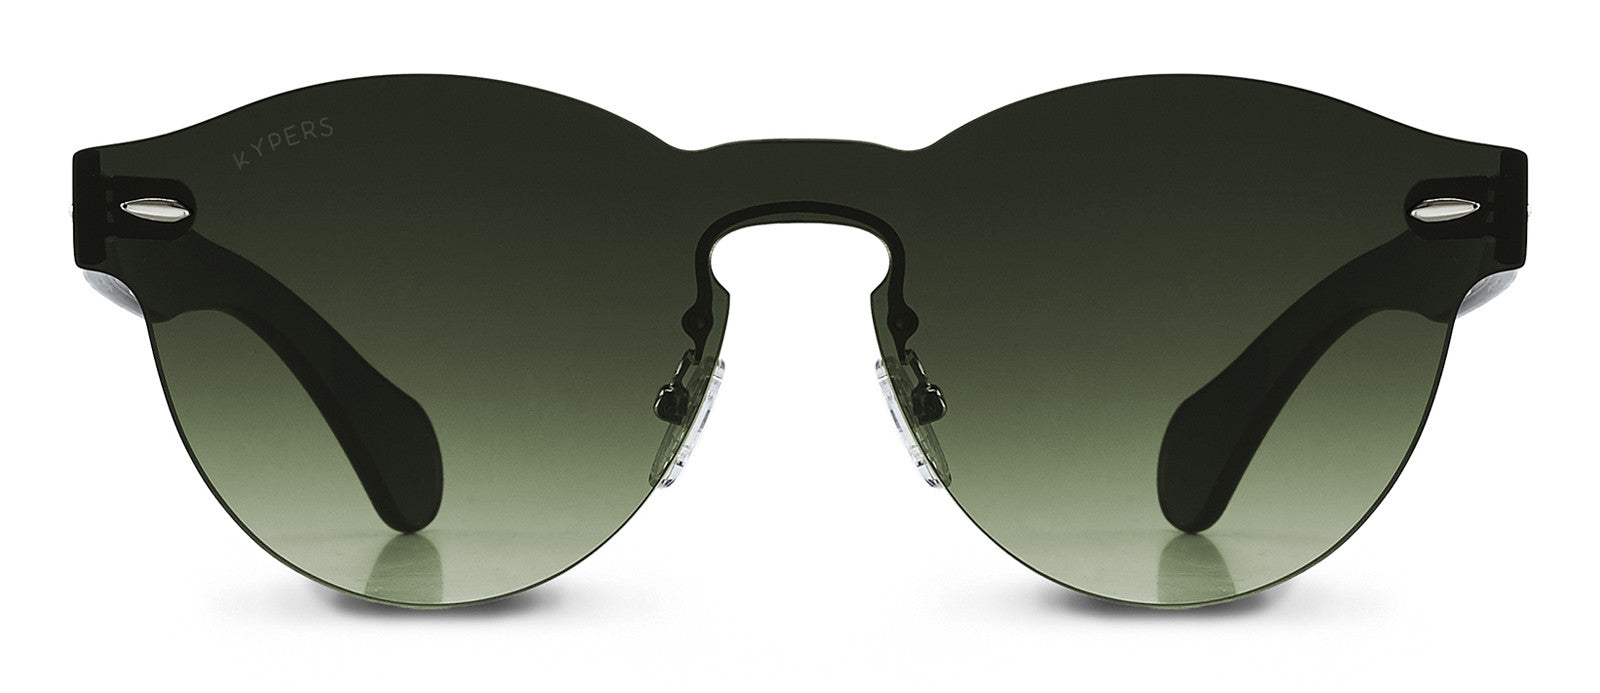 KYPERS sunglasses model LUA LU005 with black frame and green mirror lens